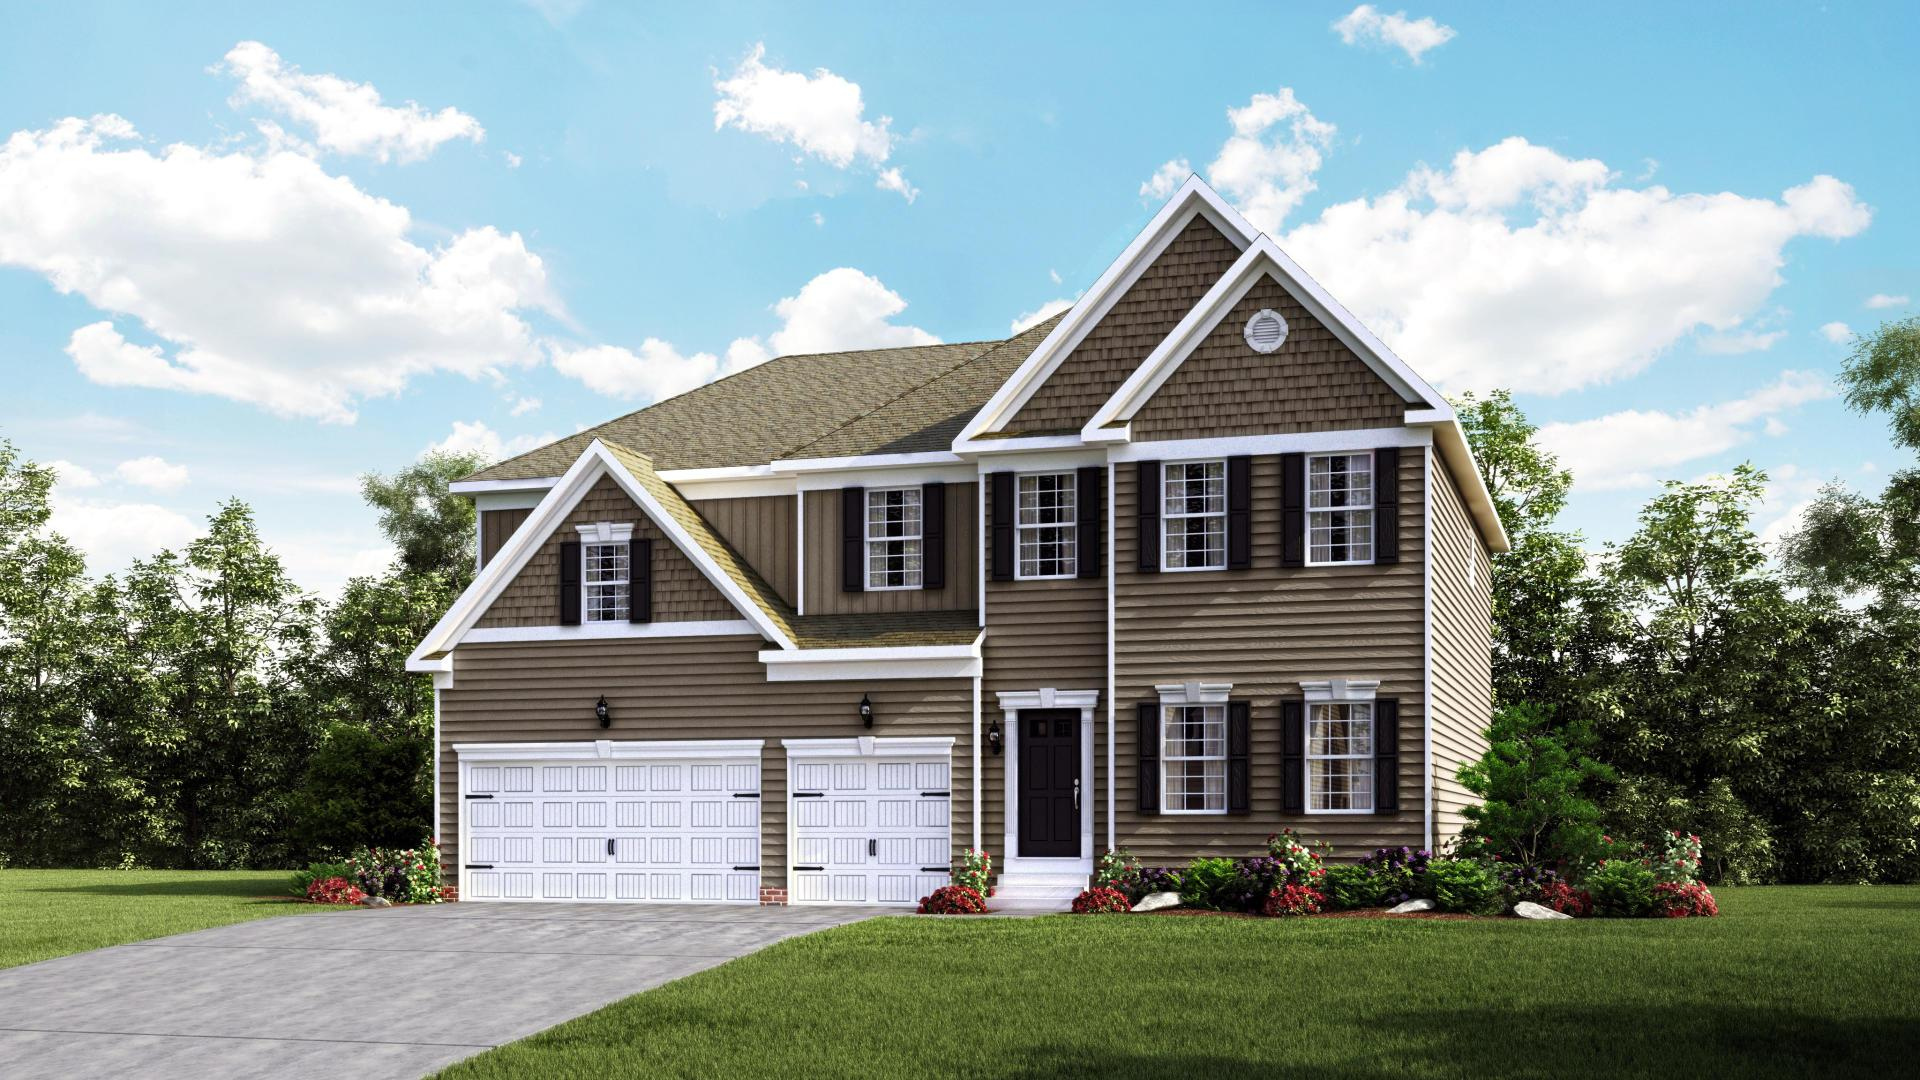 Exterior:Elevation: H Siding Facade Opt 3-Car Garage & Garage Doors